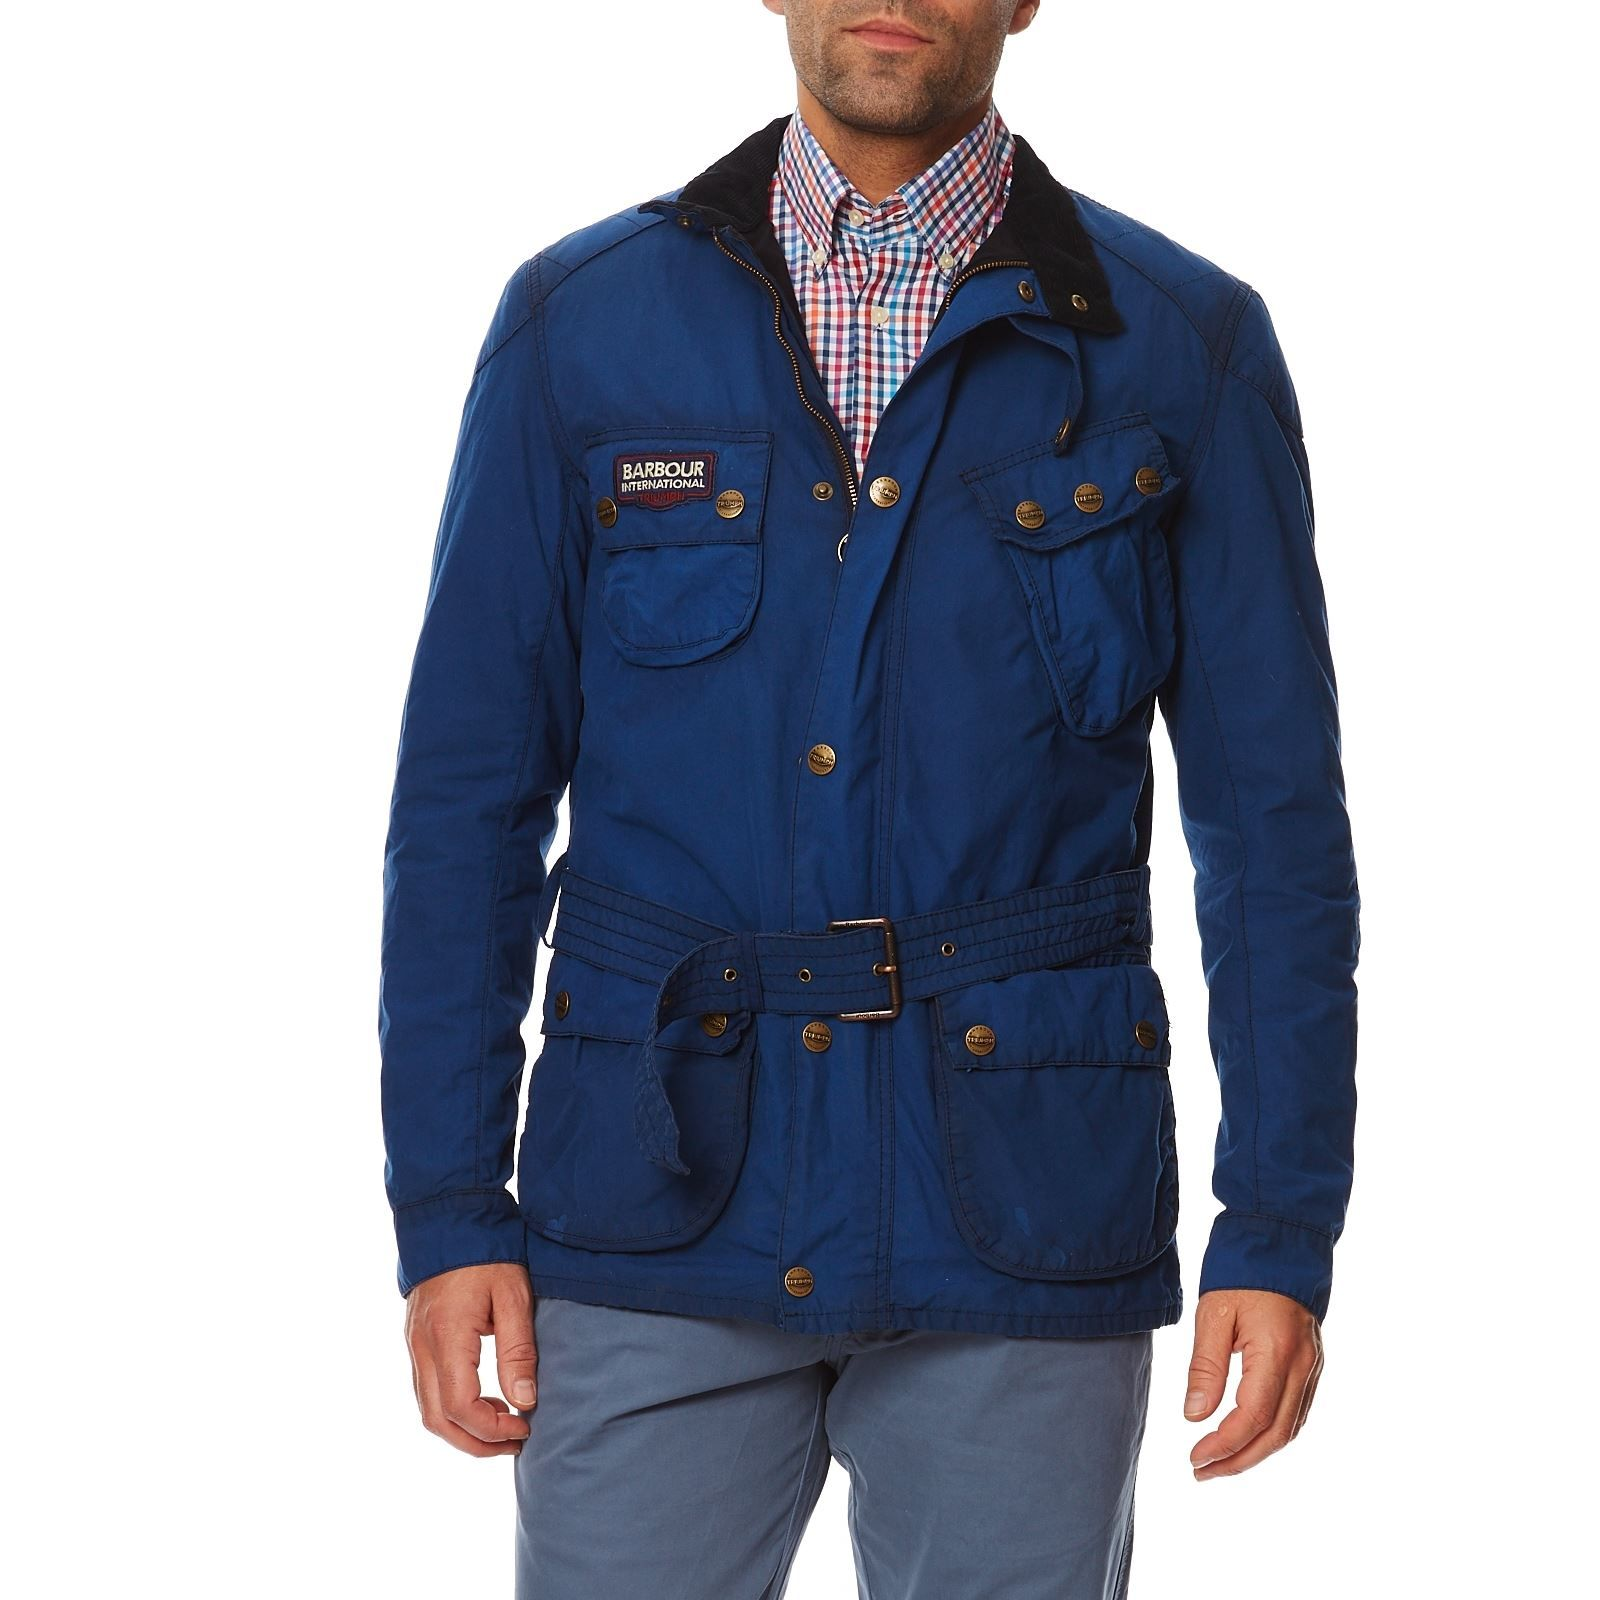 International Bleu Chaude Lifestyle Veste Triumph Barbour 5qnOSF7xw